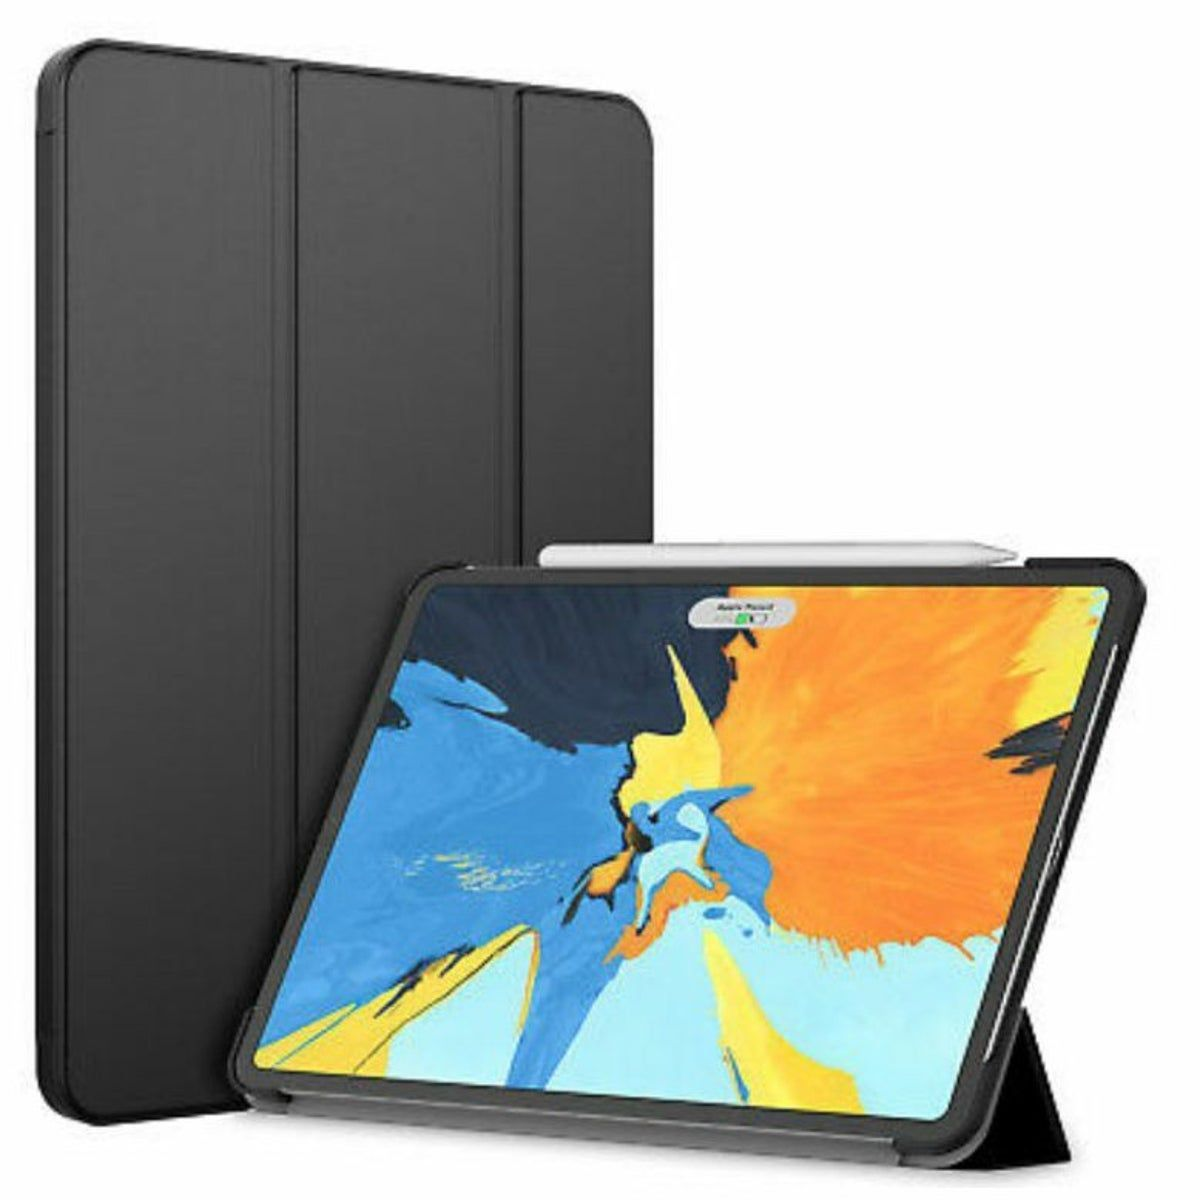 iPad pro 11 2018 case on Mercari